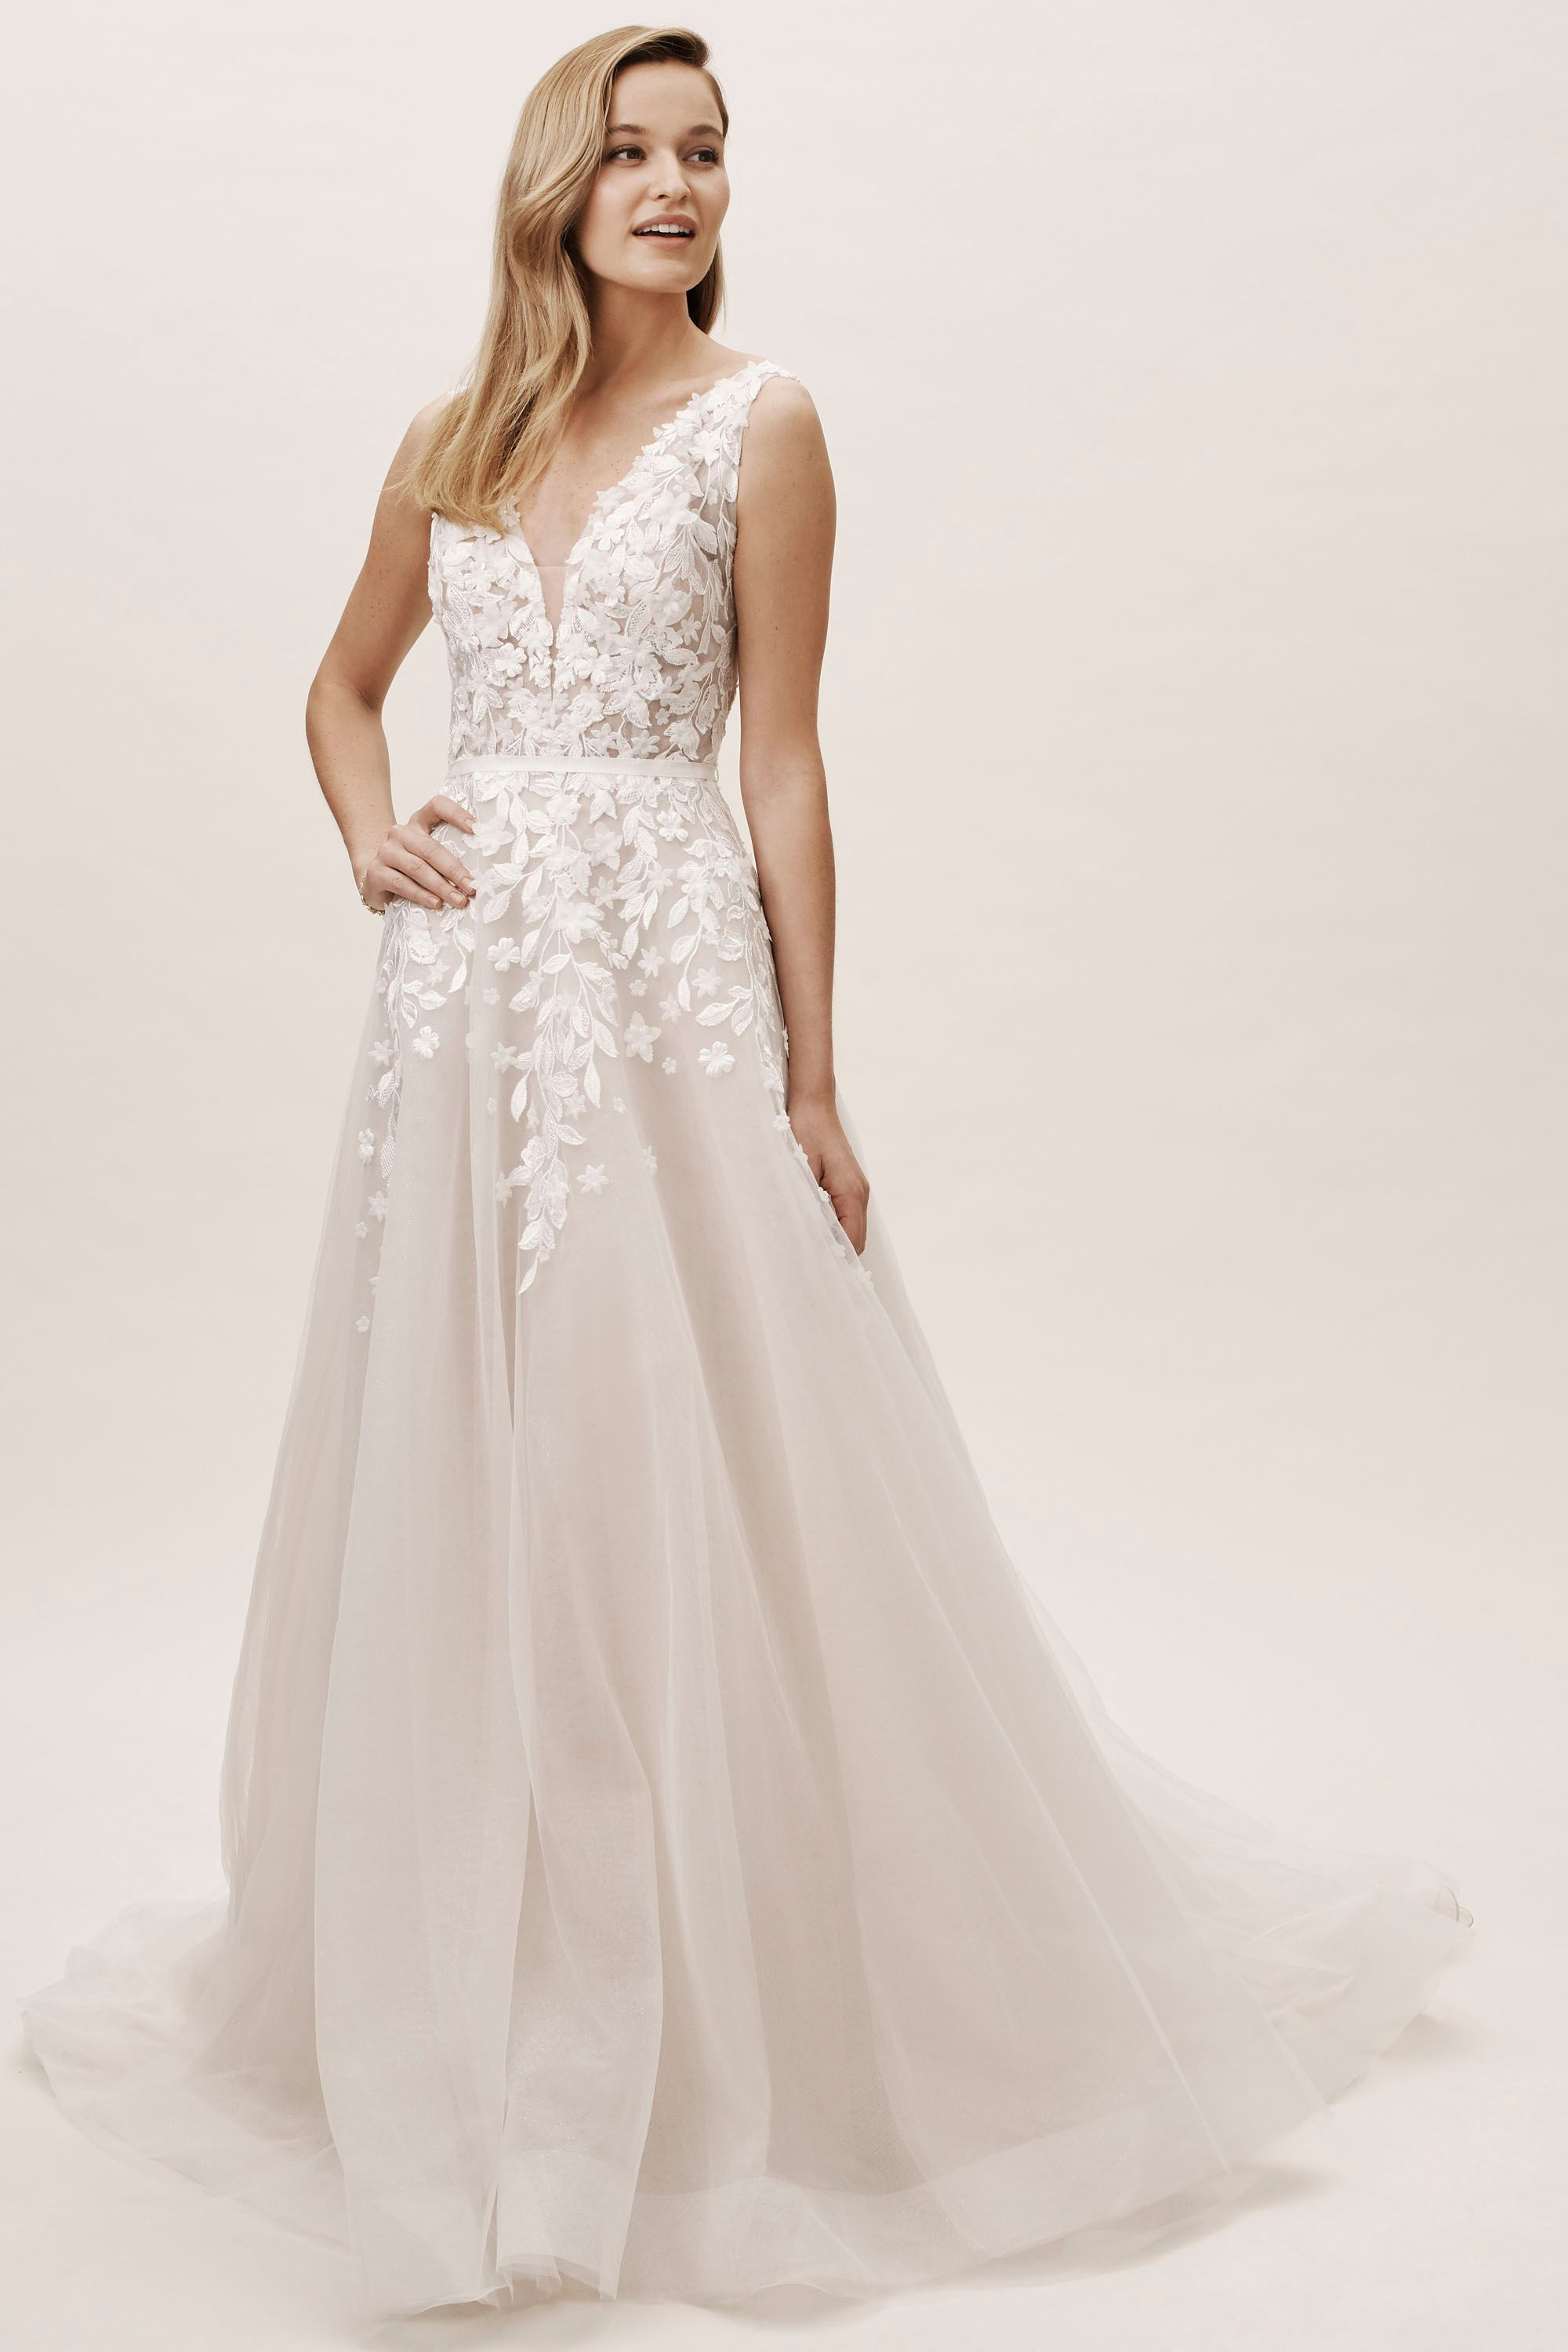 Bhldn Carmel Gown A Line Wedding Dress Wedding Dresses Lace Designer Wedding Dresses